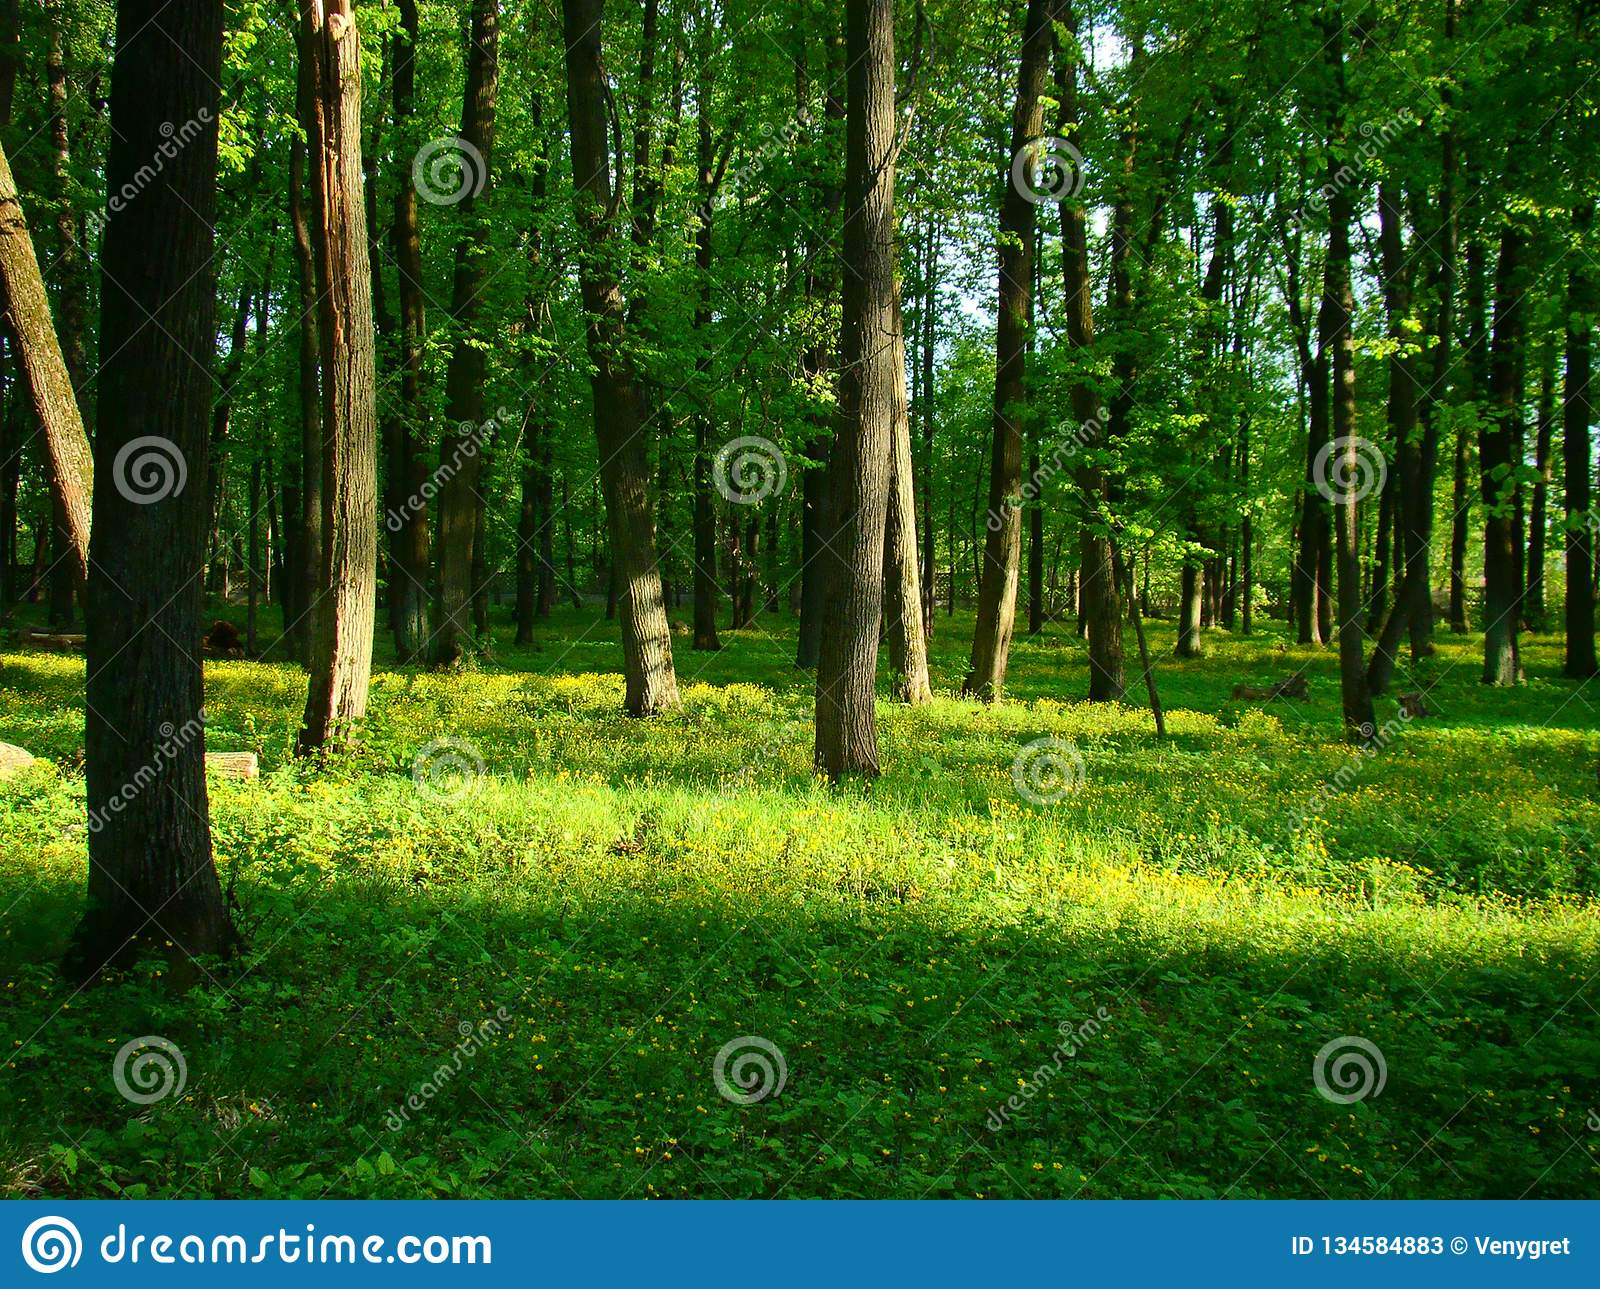 Trees And Flowers In The Sunlit Park Stock Image Image Of Plant